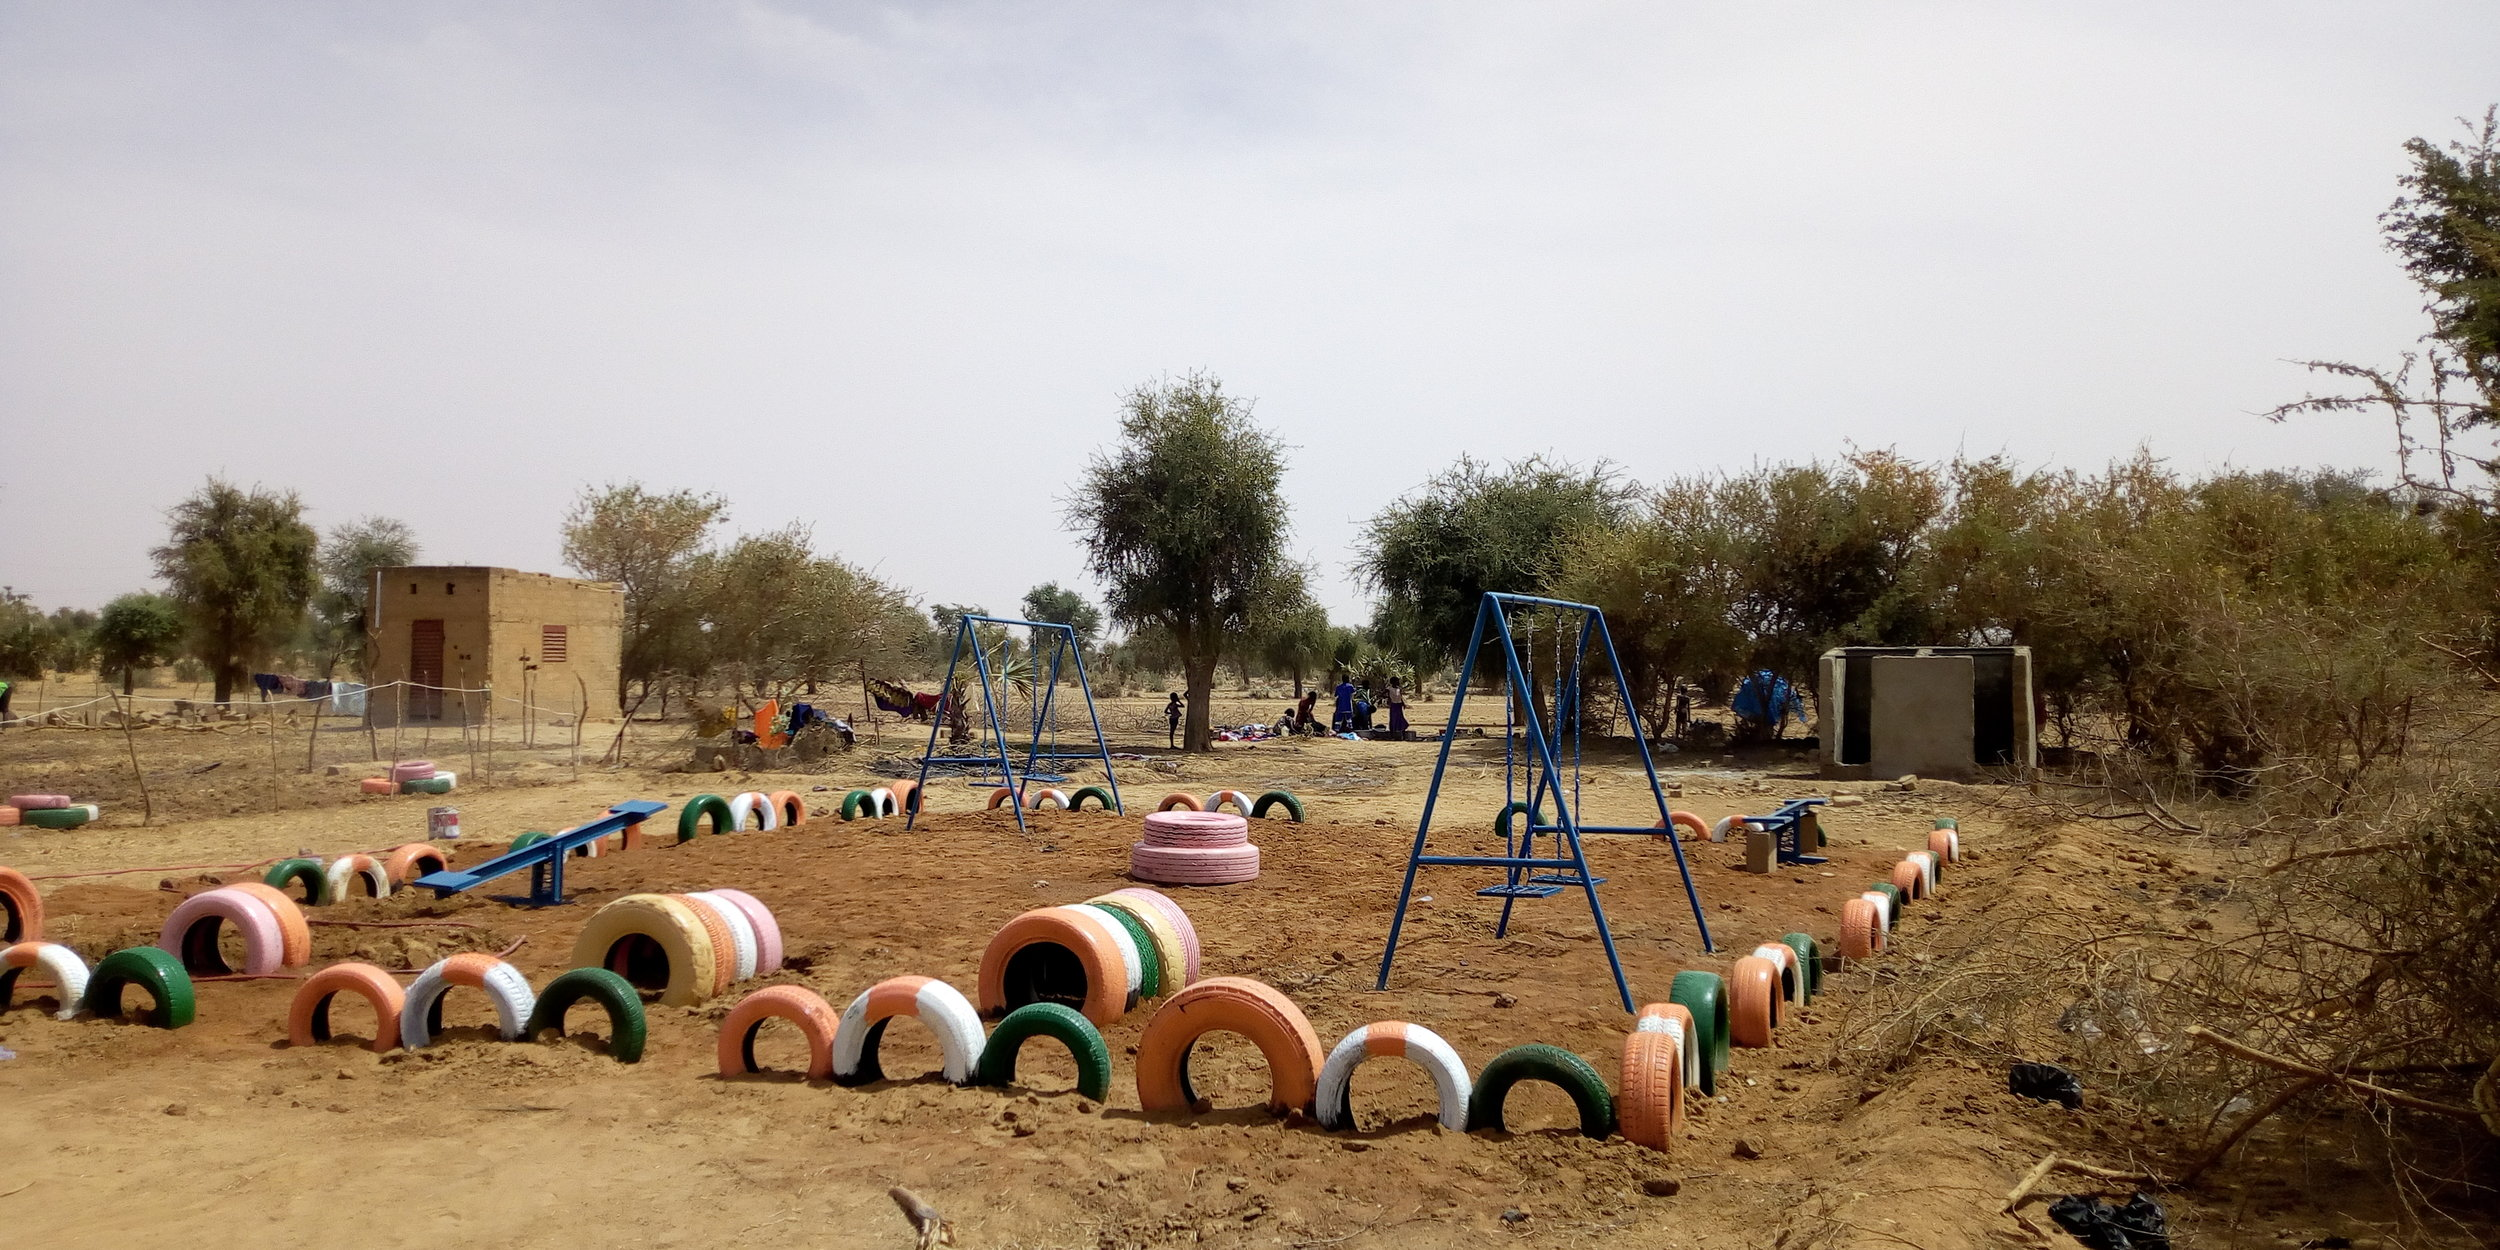 A playground introduces color and fun to the park. Credit: UN-Habitat